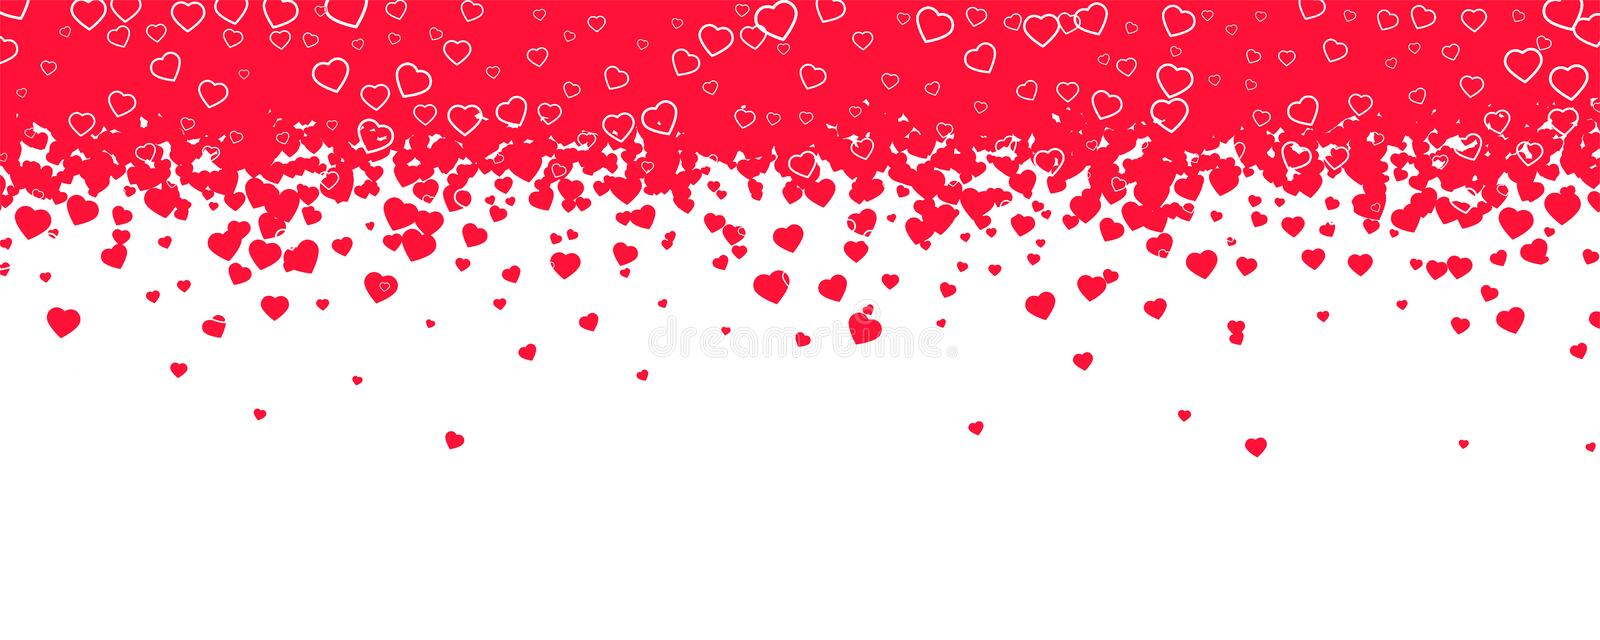 Red hearts are falling down like snowfall or rain. Decoration for holidays of holy Valentines, Womens and Mothers days vector illustration